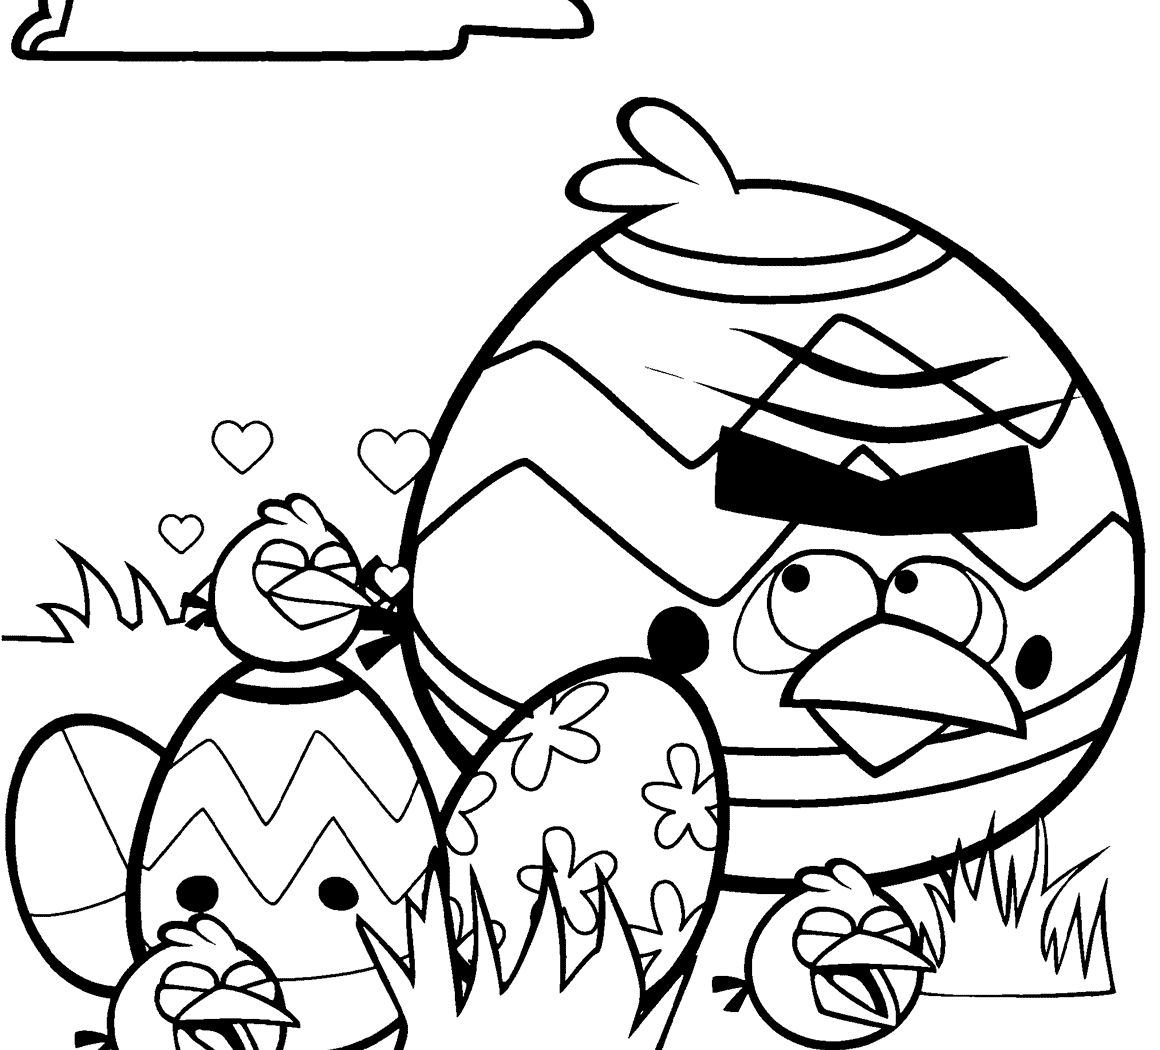 1160x1050 Angry Birds Space Coloring Pages To Print And Download Free